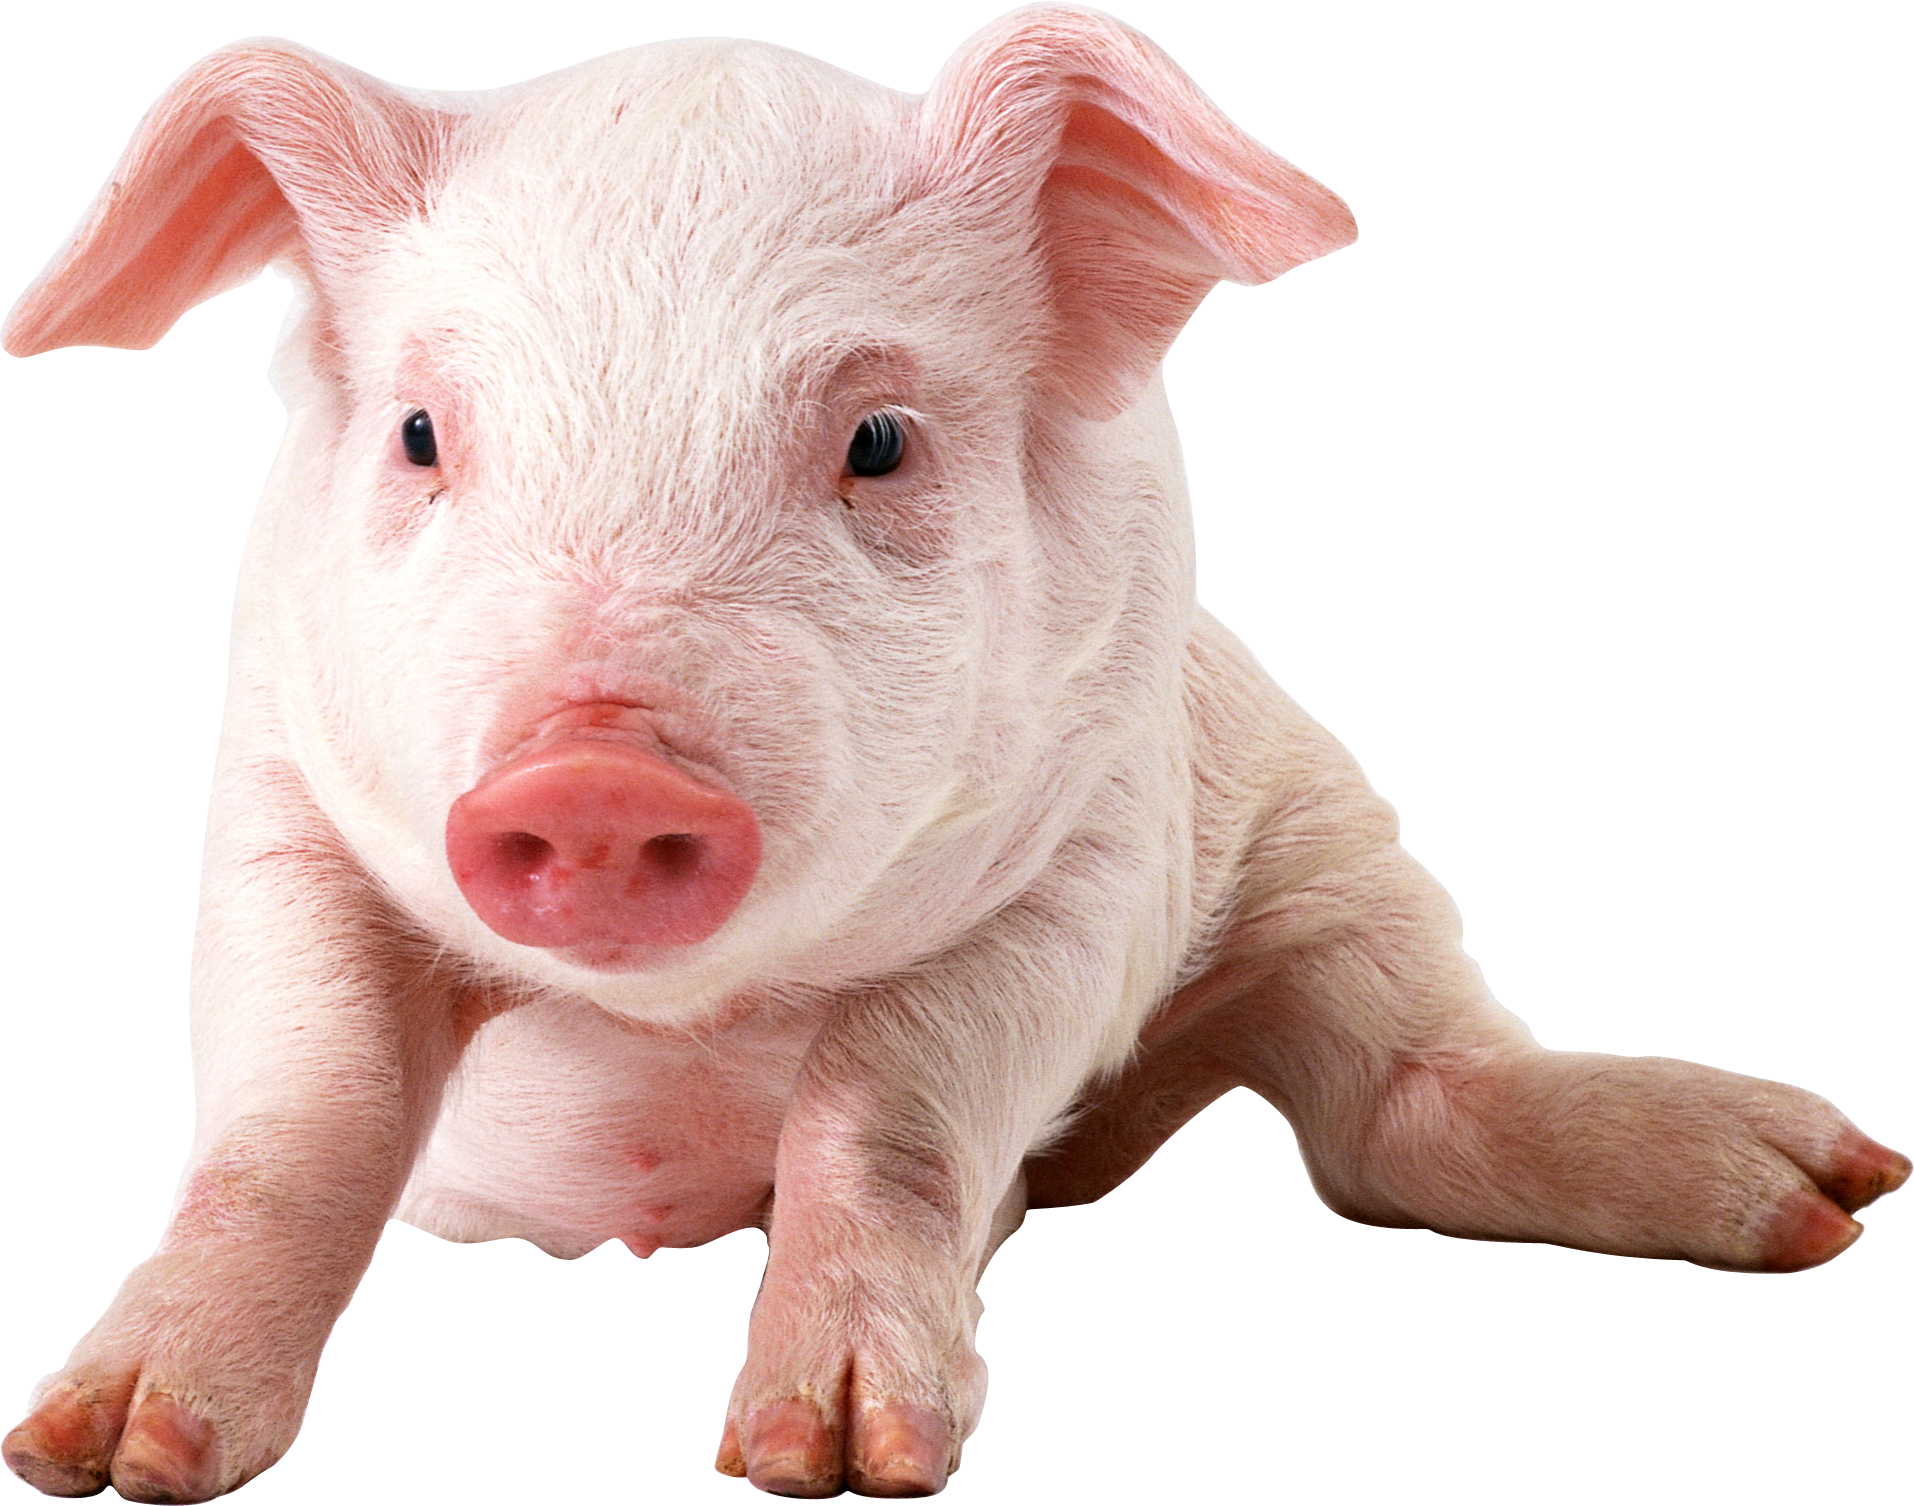 pig PNG image - Pig PNG